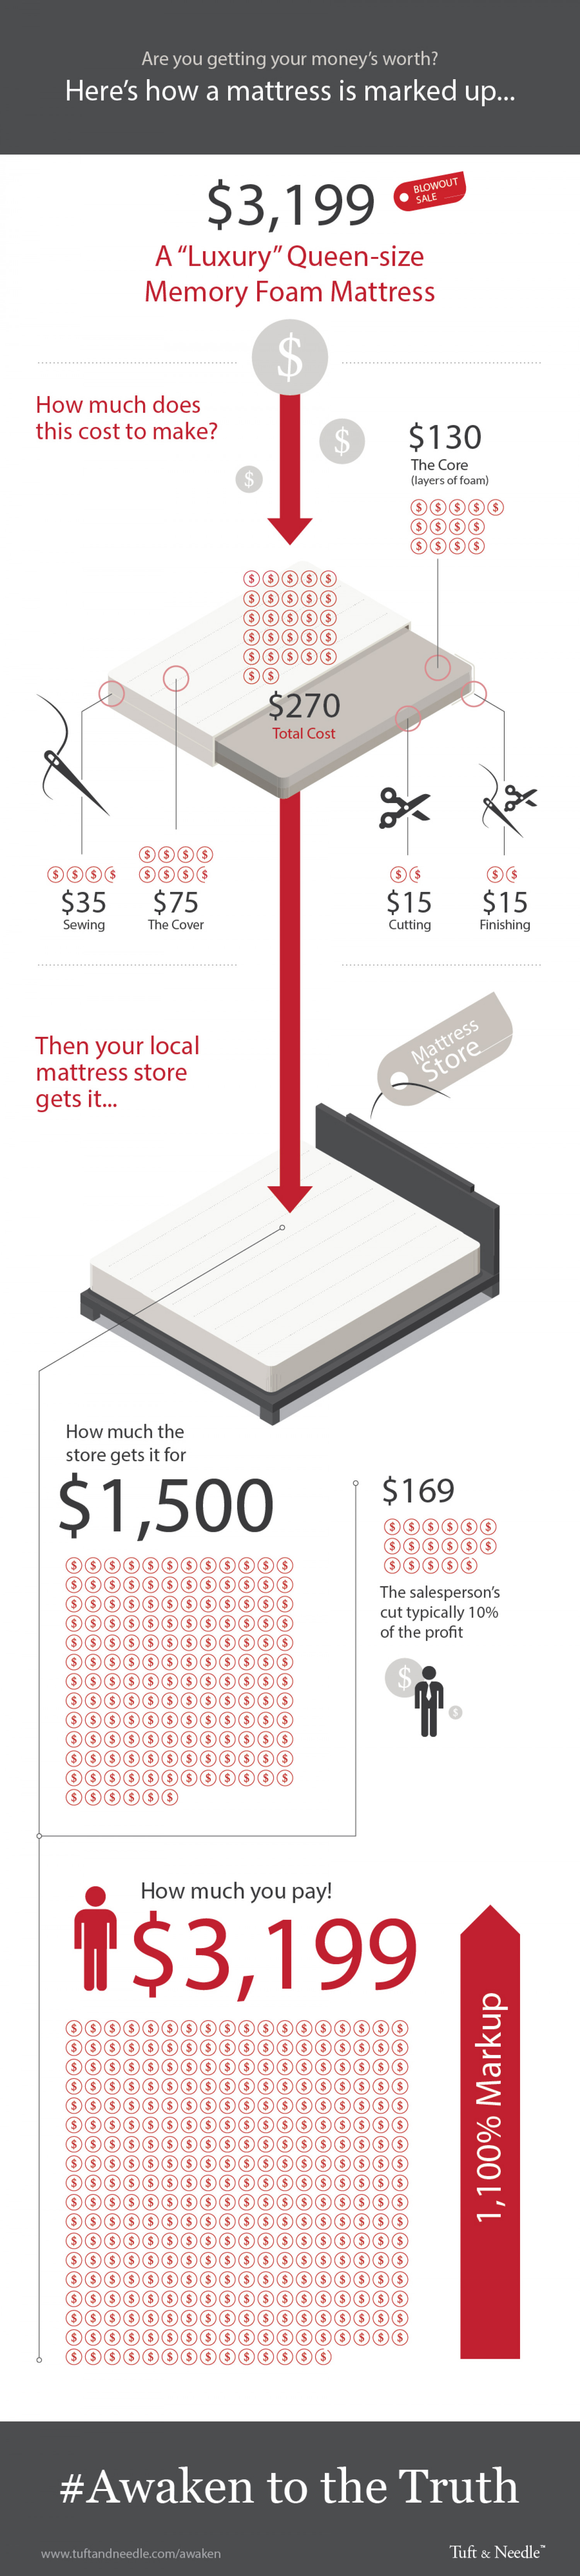 How a mattress is marked up Infographic